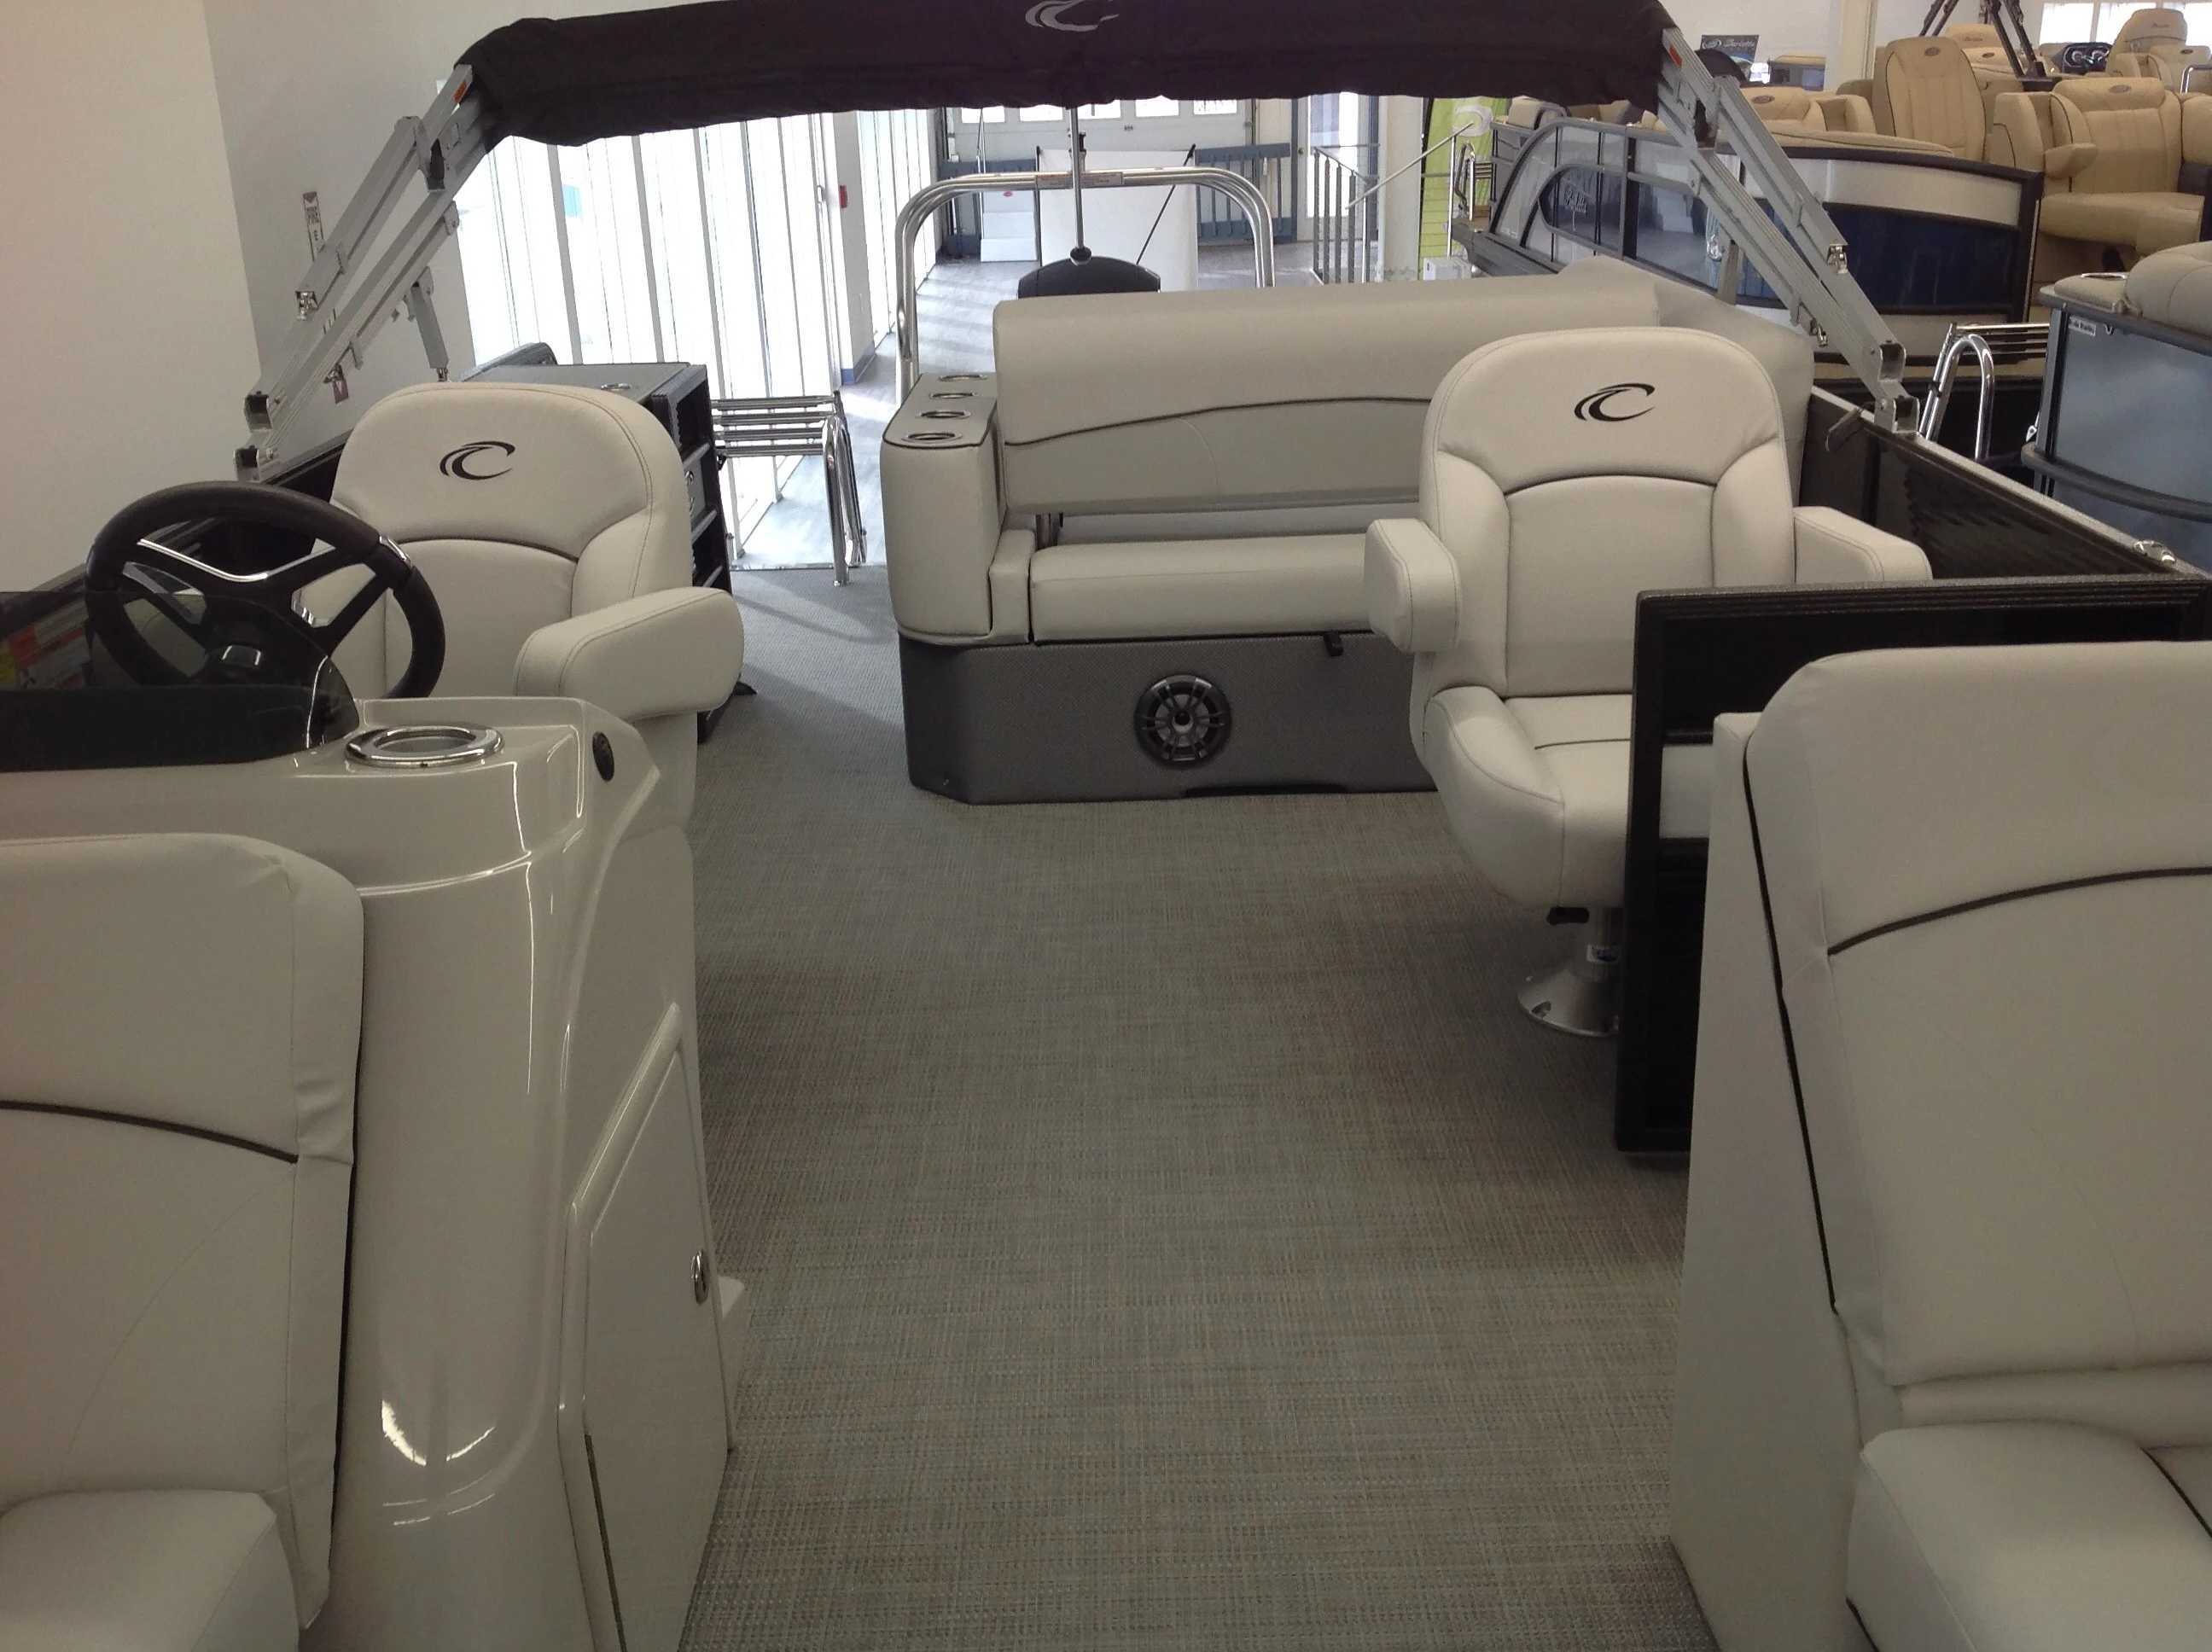 2021 Crest boat for sale, model of the boat is Cl Lx 220slsc & Image # 5 of 13